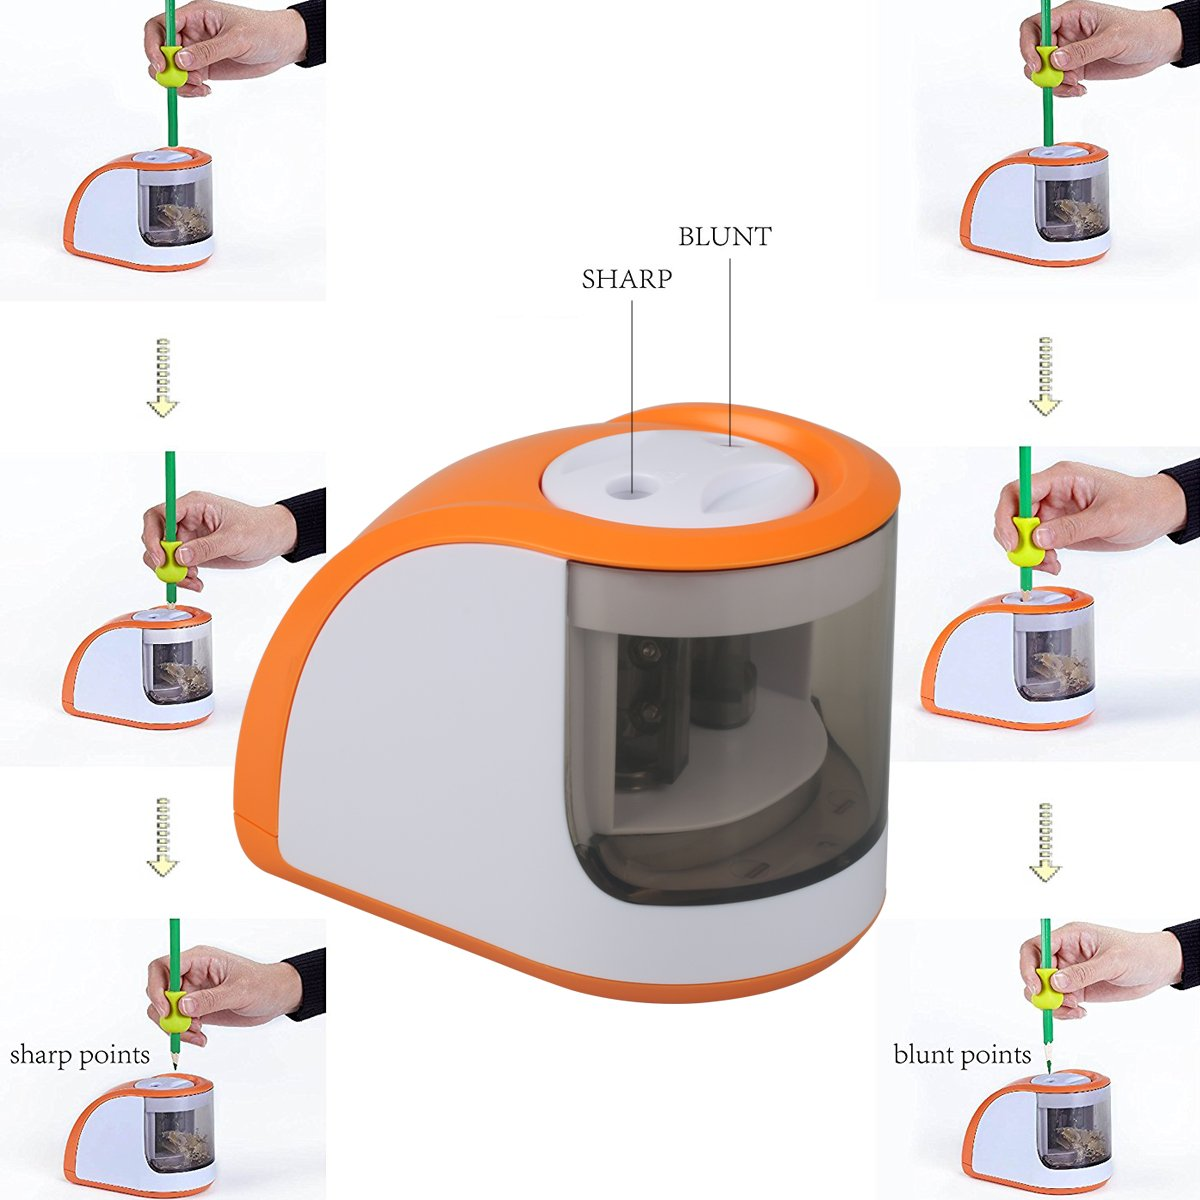 Electric Pencil Sharpeners with 2 Holes 6-8mm Both Power Cord and Battery Opreat for Colored Pencils